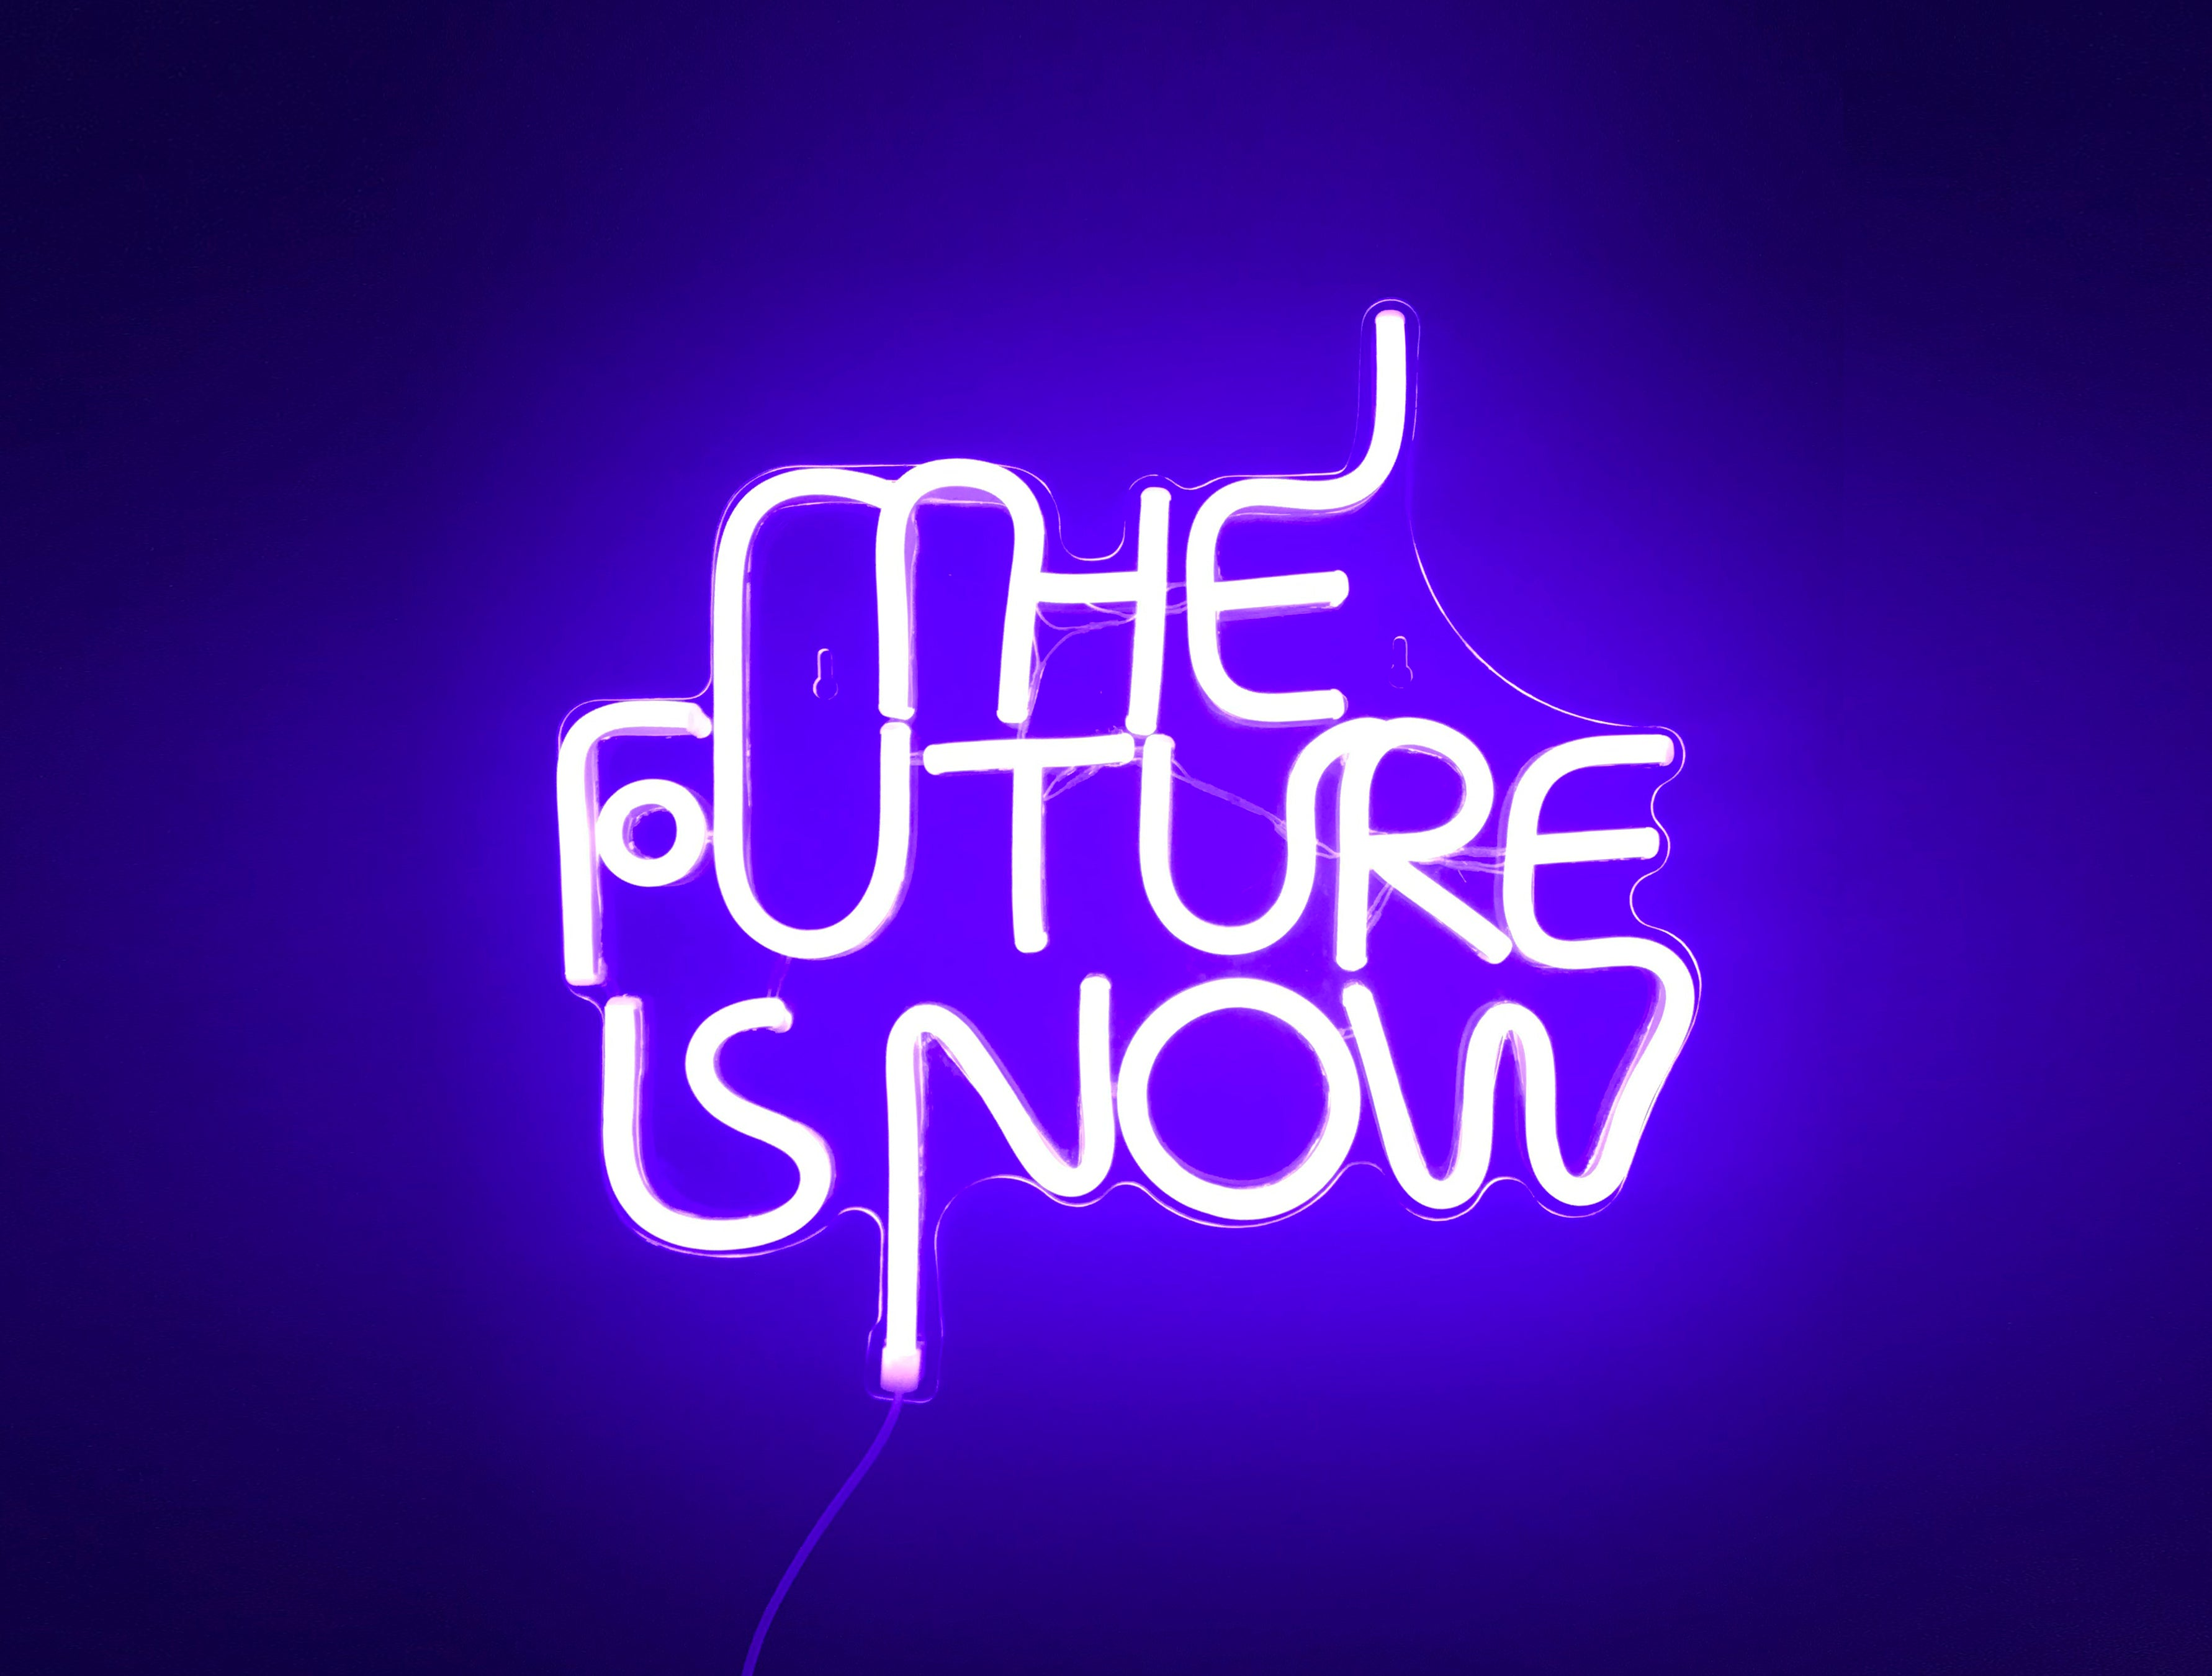 The Future is Now LED Neon Wall Sign - Cocus Pocus